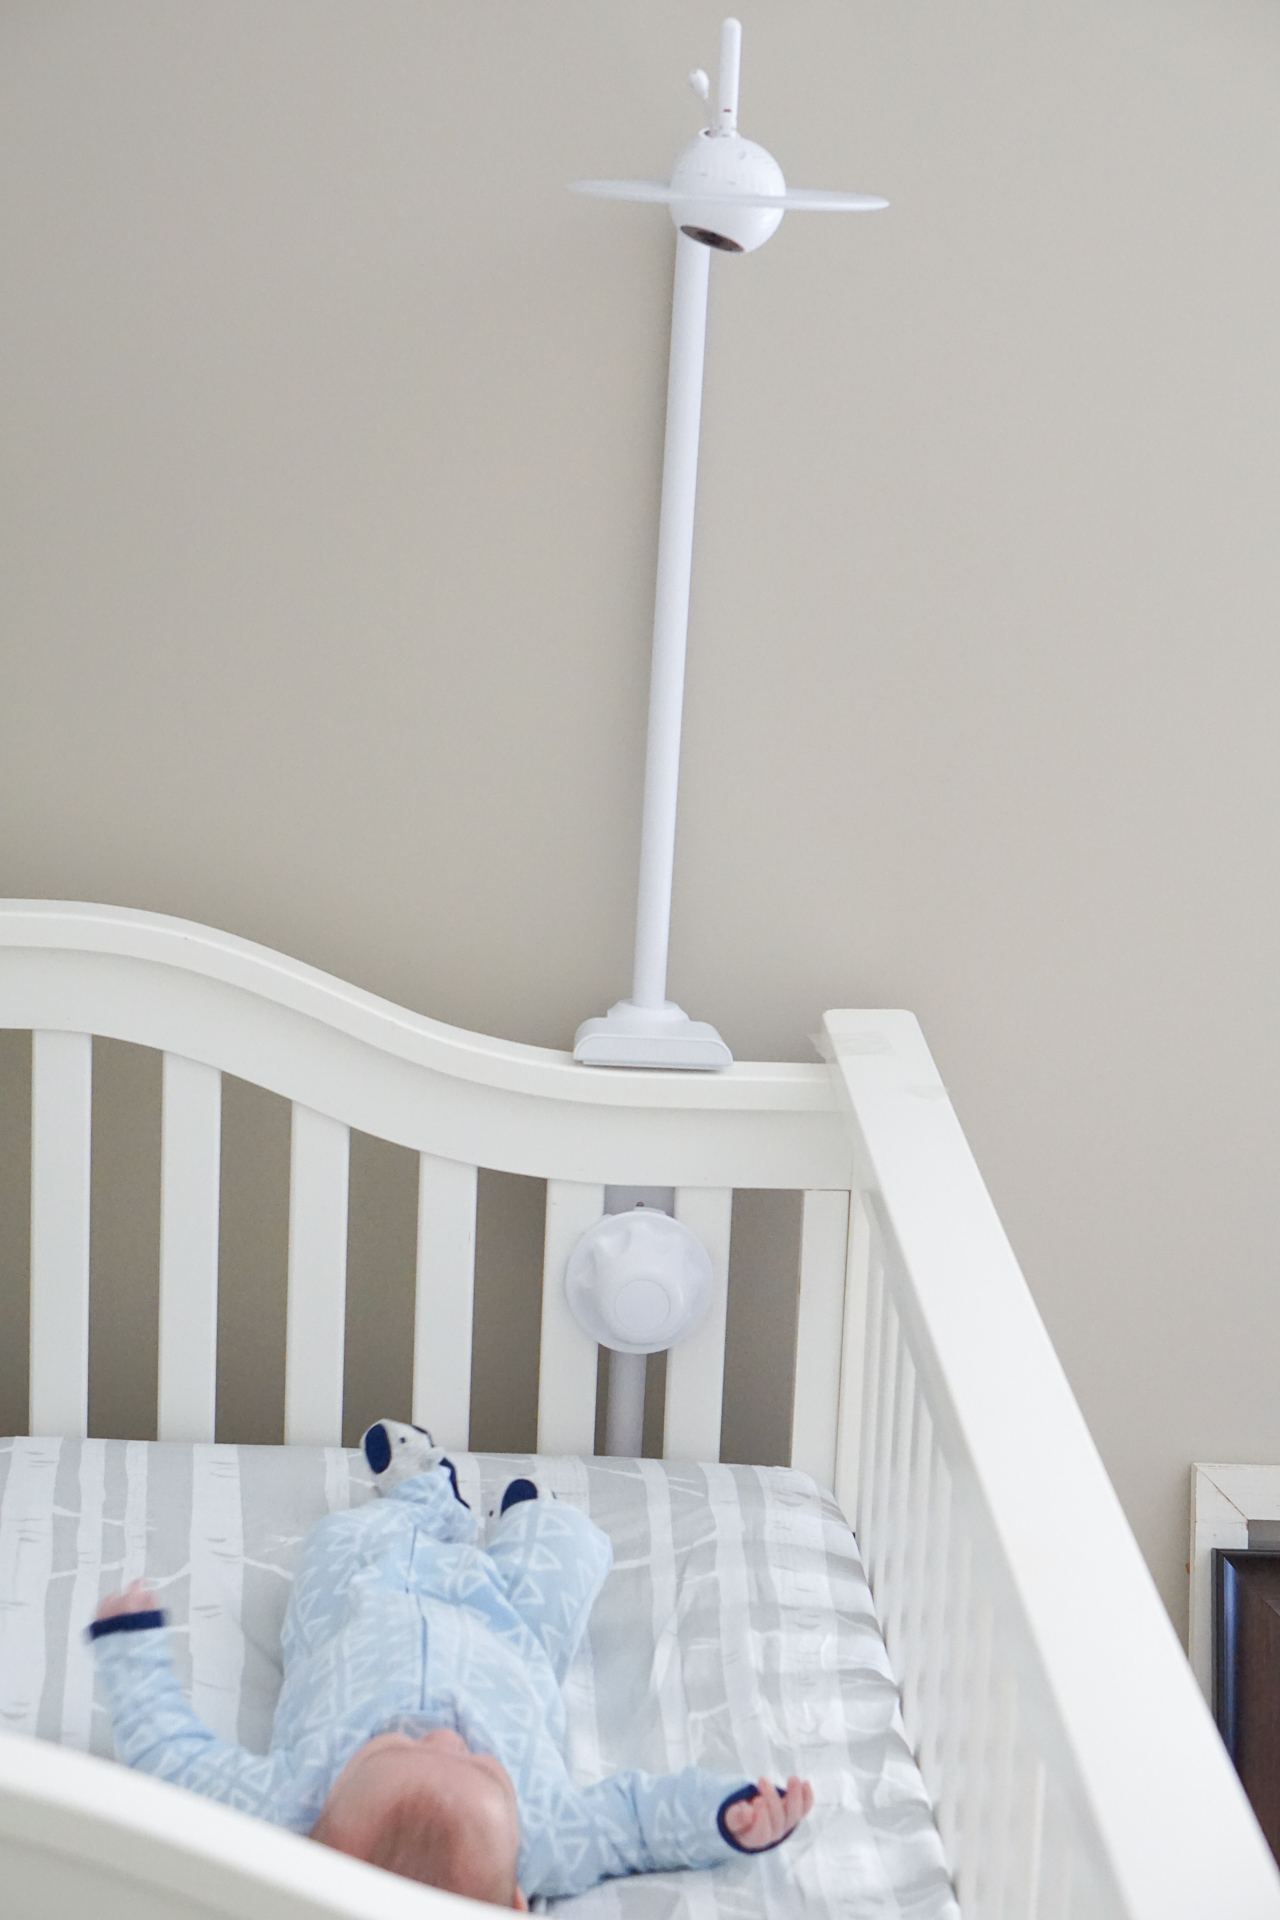 Best baby monitor - The Motorola Halo, baby registry list